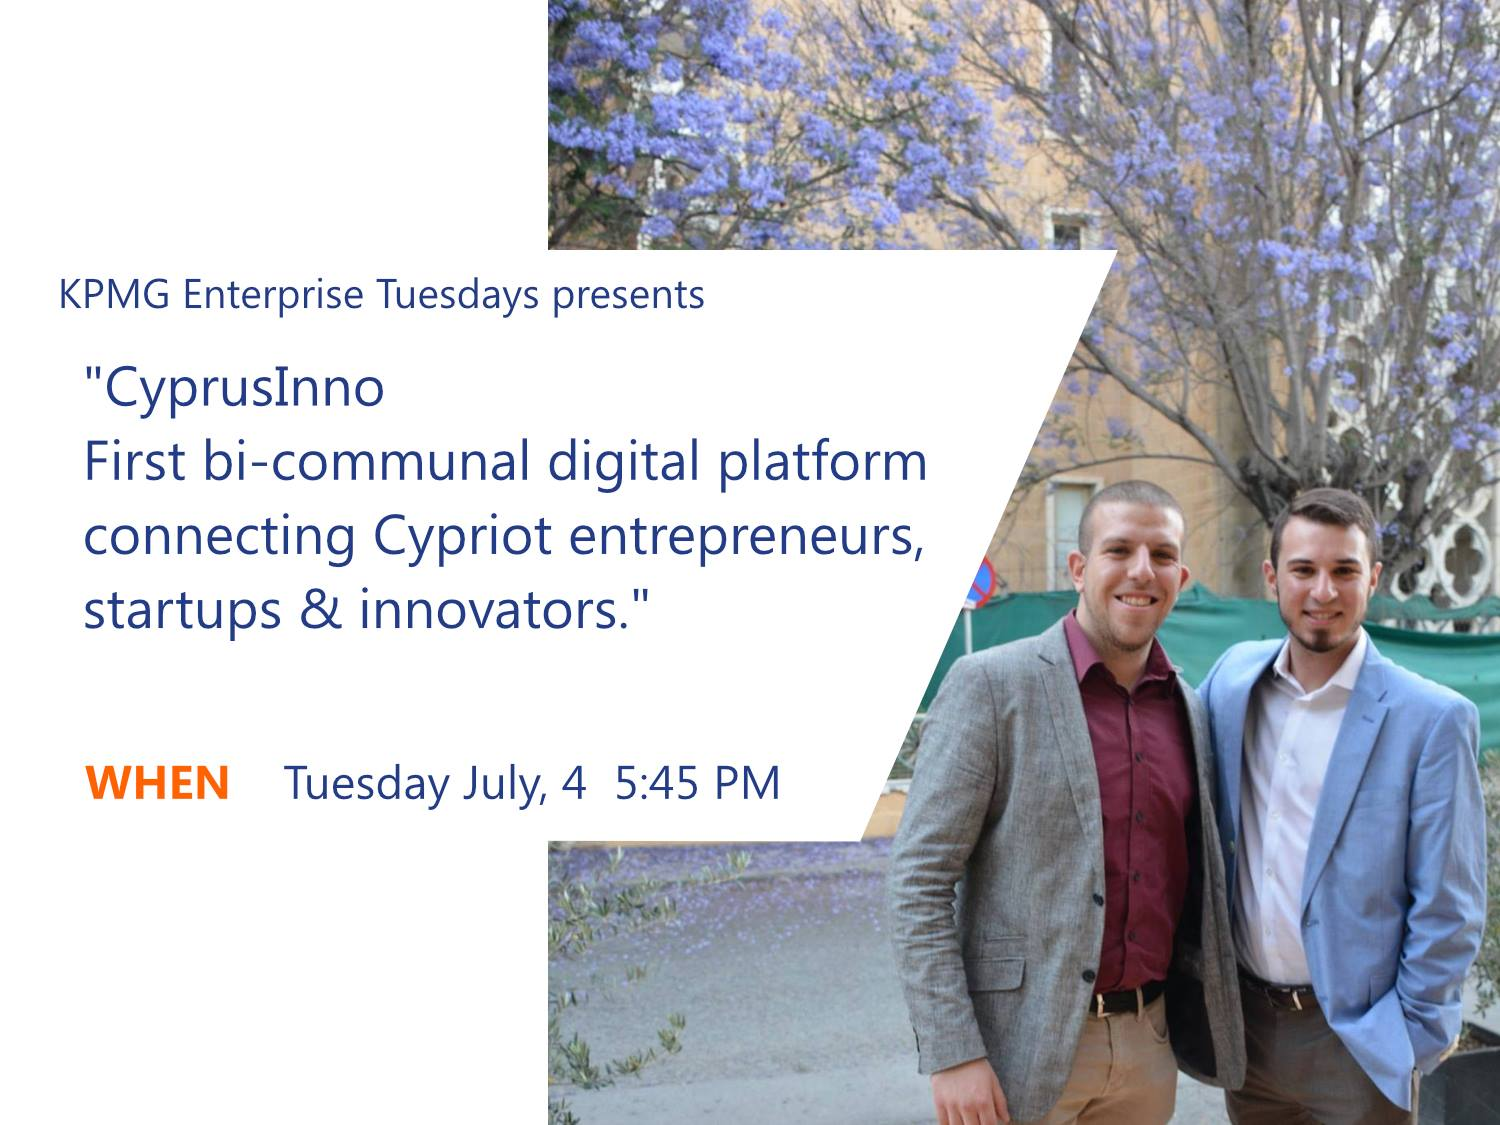 KPMG Enterprise Tuesdays Presents Learn Fundamental Leadership Tips for Achieving Peak Performance cyprus cyprusinno 1